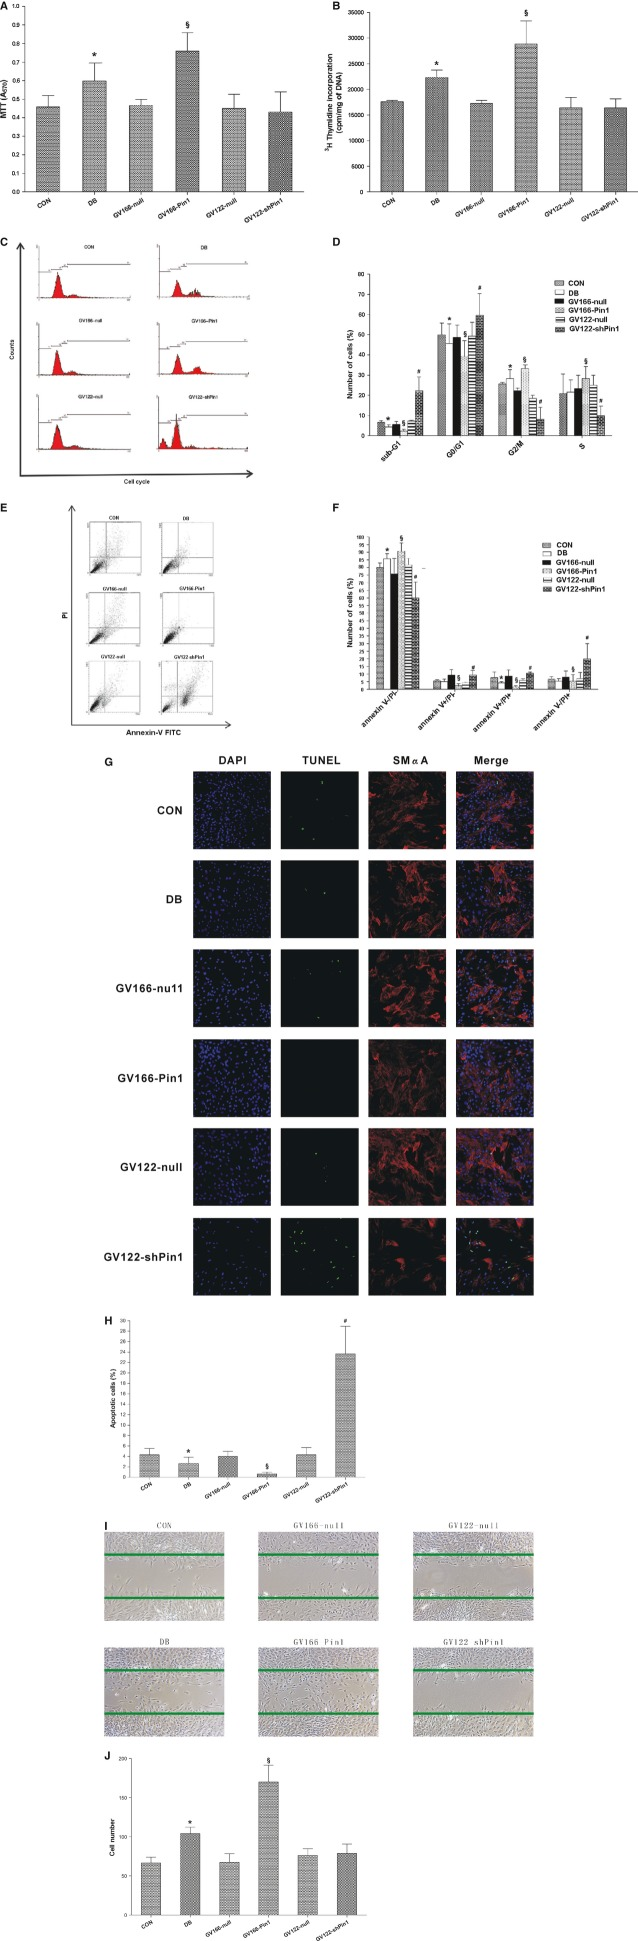 Effects of <t>Pin1</t> on proliferation, cell cycle progression, apoptosis and migration in vascular smooth muscle cells (VSMCs). VSMCs were cultured and infected as described in Figure 3 . Cell proliferation was assessed by both the MTT assay ( A ) and [ 3 H]-thymidine incorporation analyses ( B ). Cell cycle analysis was quantified by PI staining followed by flow cytometry analyses. M1, M2, M3 and M4 indicate sub G1, G0/G1, S and G2/M phases respectively ( C ). Bar graphs represent the mean ± SEM of three independent experiments ( D ). Cell apoptosis was detected by annexin <t>V-FITC/PI</t> staining ( E ) followed by flow cytometry analysis and TUNEL staining ( G ). The proportion of live cells (annexin V−/PI−), early apoptotic cells (annexin V+/PI−), late apoptotic/necrotic cells (annexin V+/PI+) and dead cells (annexin V−/PI+) was calculated for comparison ( F ). The TUNEL-positive cells were stained green, VSMCs were stained for SMαA and shown in red. Nuclei were stained blue by DAPI. The percentages of apoptotic nuclei were calculated by determining the number of DAPI-stained nuclei that were also positive for TUNEL staining. Approximately, 100 nuclei cells were counted in randomly chosen fields per region ( H ). VSMC migration was determined by a standard wound healing assay ( I ). Bar graphs represent the mean ± SEM of three independent experiments ( J ). * P